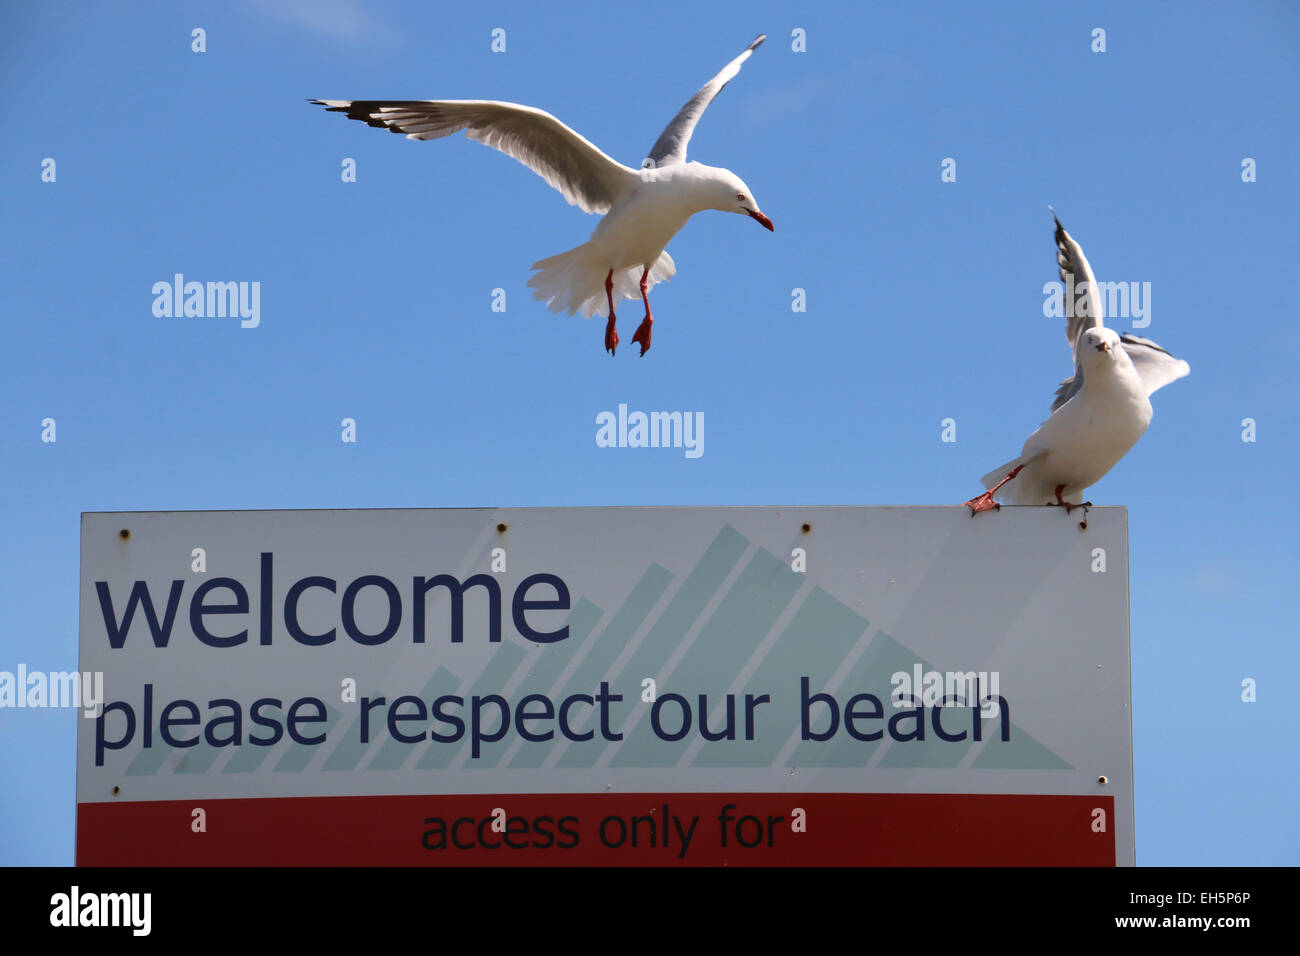 Red billed gull on respect our beach sign Waikanae Beach New Zealand - Stock Image